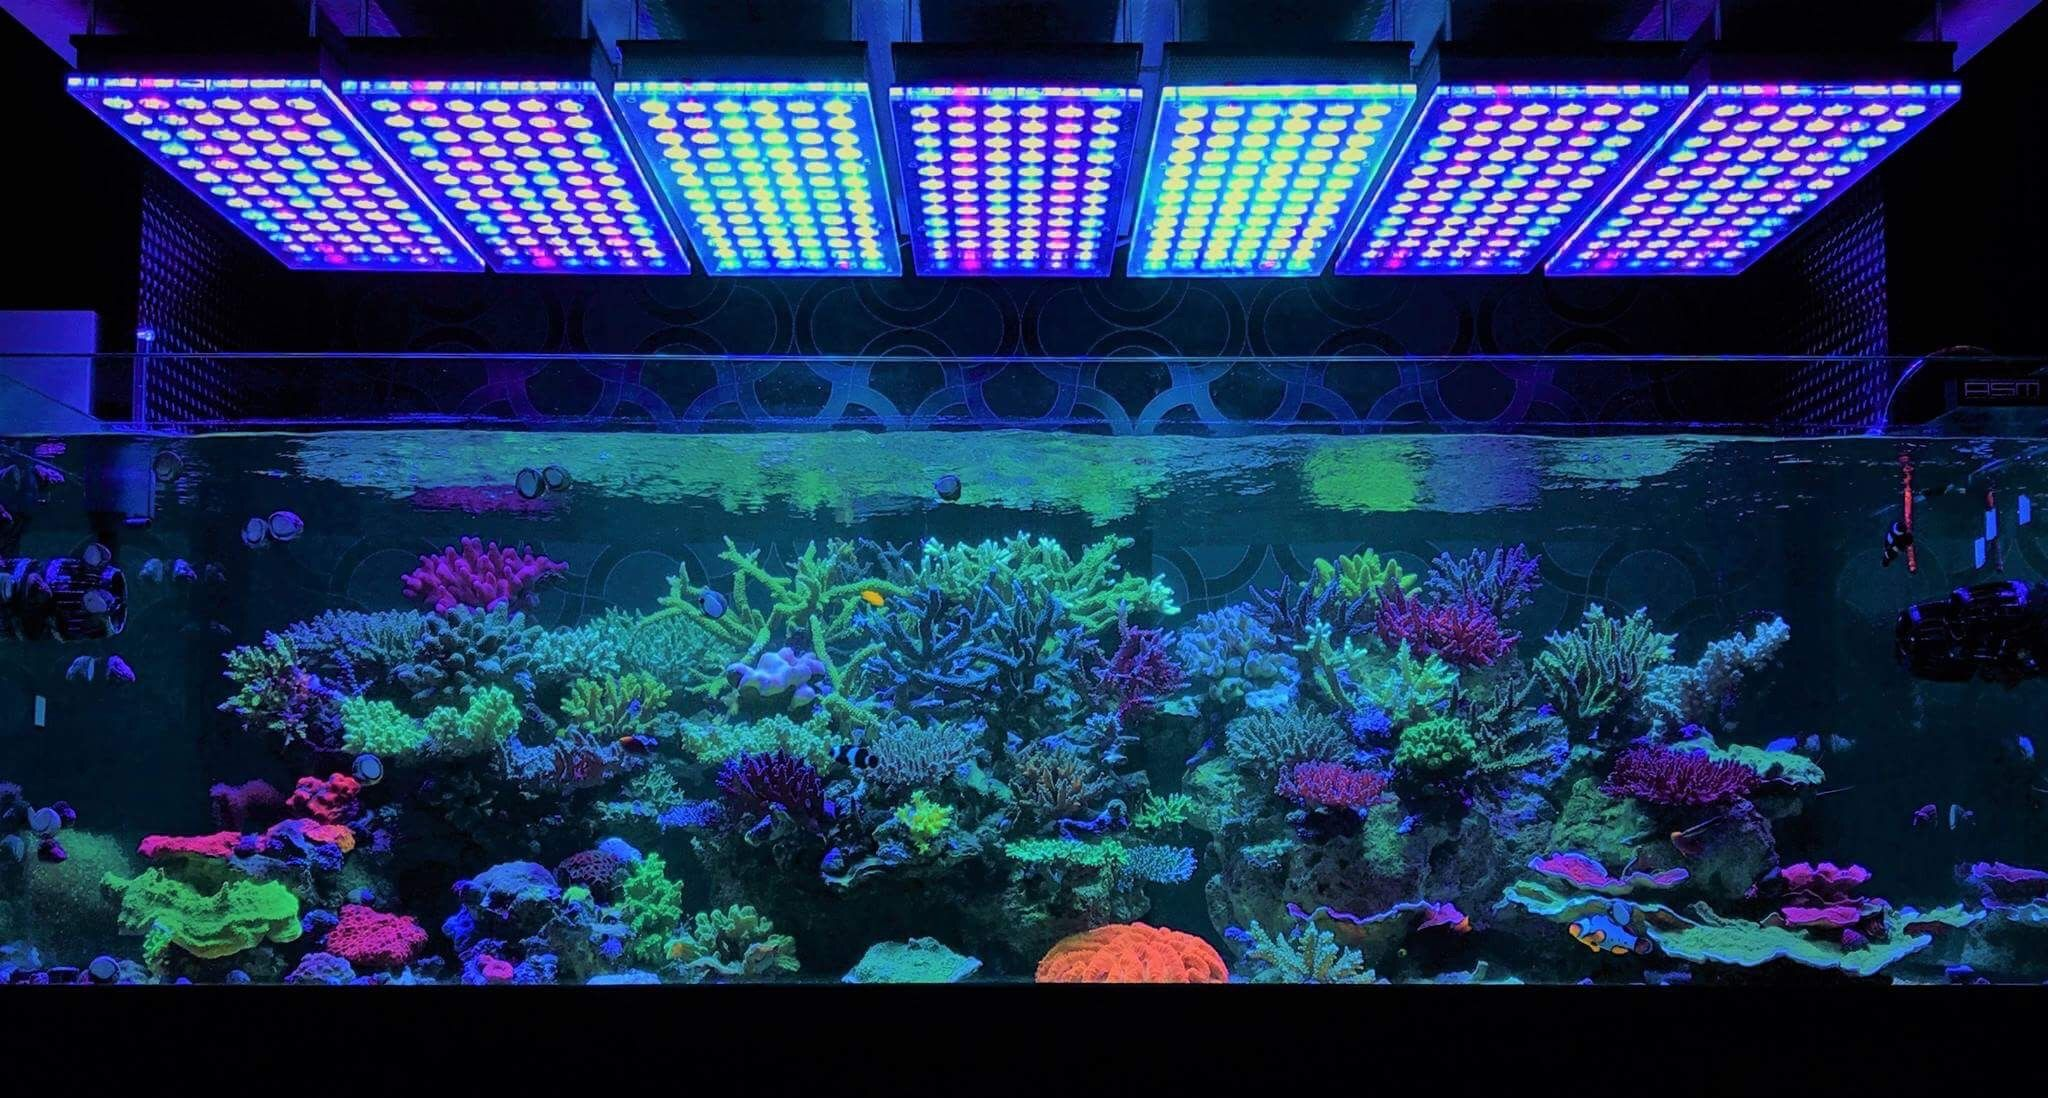 When Should You Start Adding Corals To A Reef Tank How Do You Decide When The Tank Is Ready Click The Link To Of Saltwater Fish Tanks Reef Tank Reef Aquarium